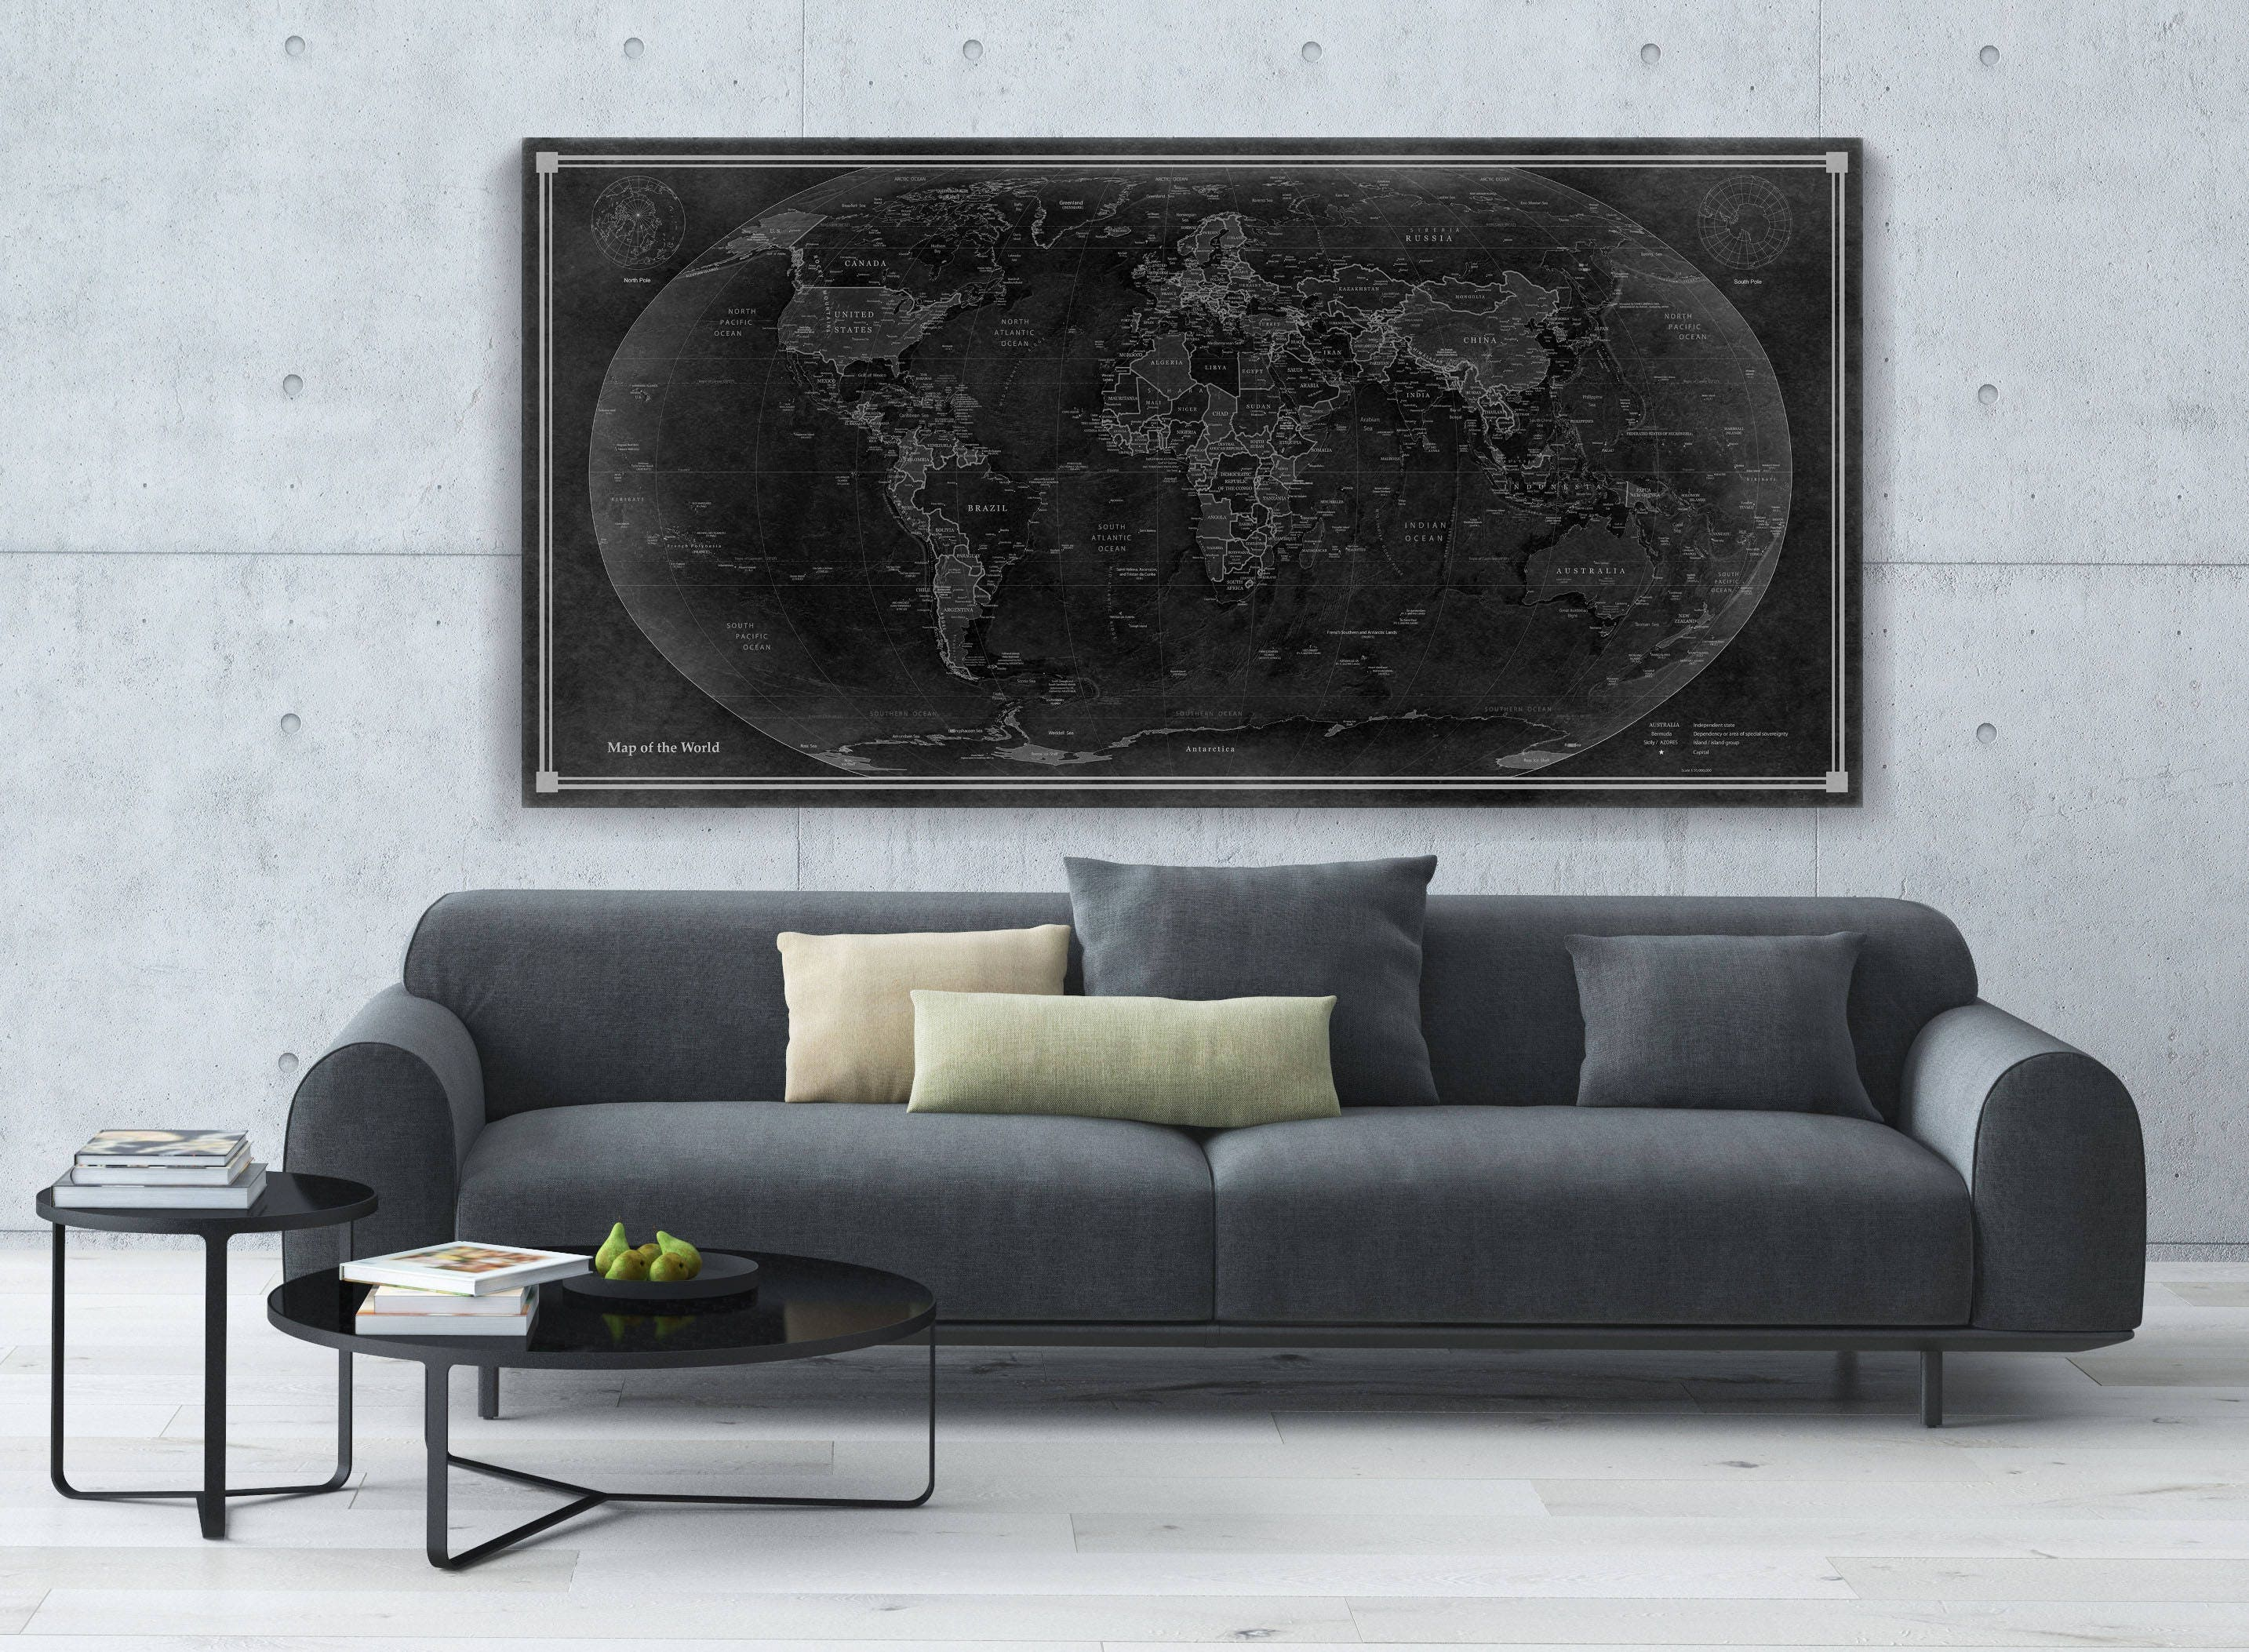 World map canvas or paper with old look 4080 max print or gallery world map canvas or paper with old look 4080 max print or gallery wrap 6 colors and 3 sizes to choose free shipping usa gumiabroncs Choice Image